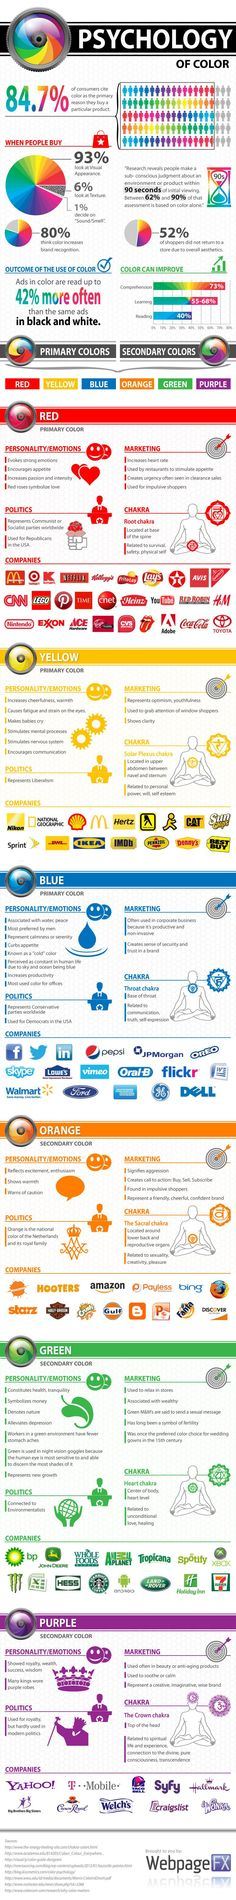 Colours - meaning & brands